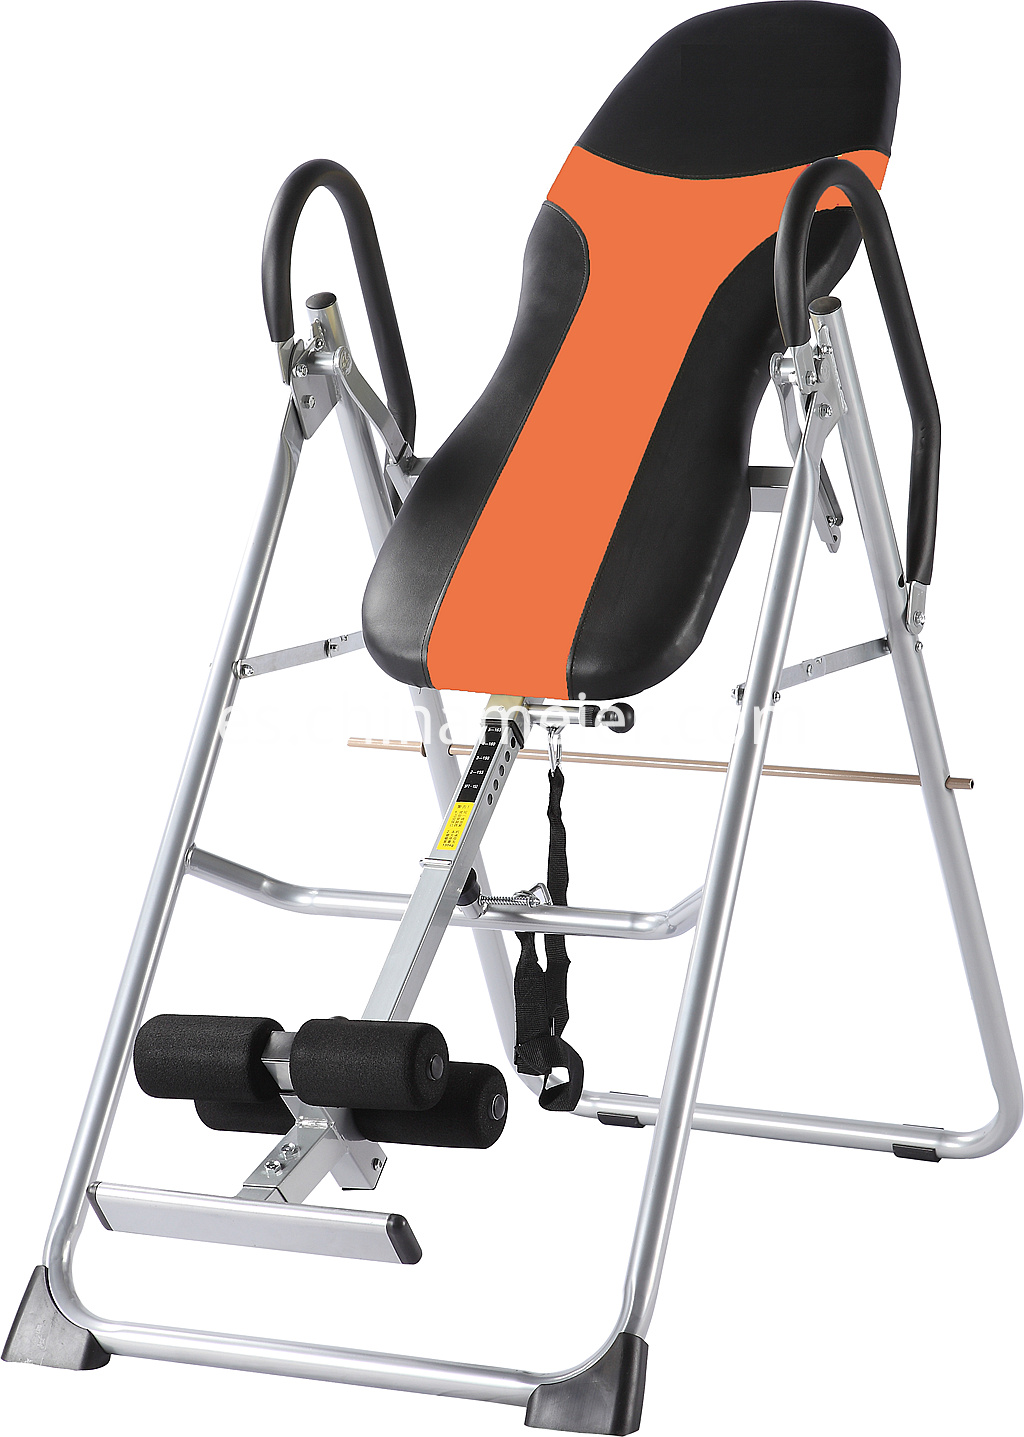 Super inversion table